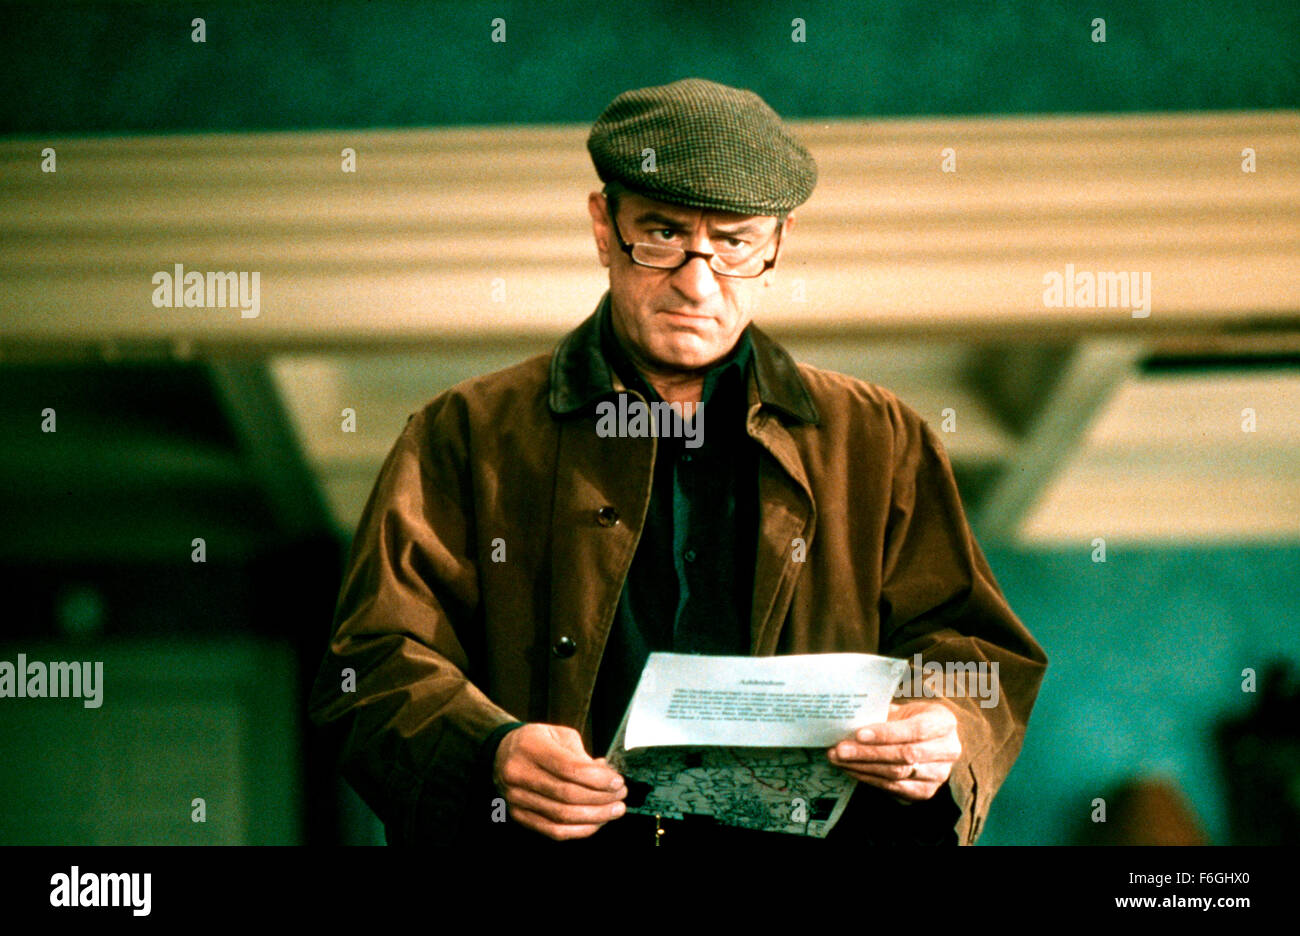 Mar 02, 2000; Hollywood, CA, USA; ROBERT DE NIRO stars as Jack Byrnes in the comedy 'Meet the Parents' diretced - Stock Image